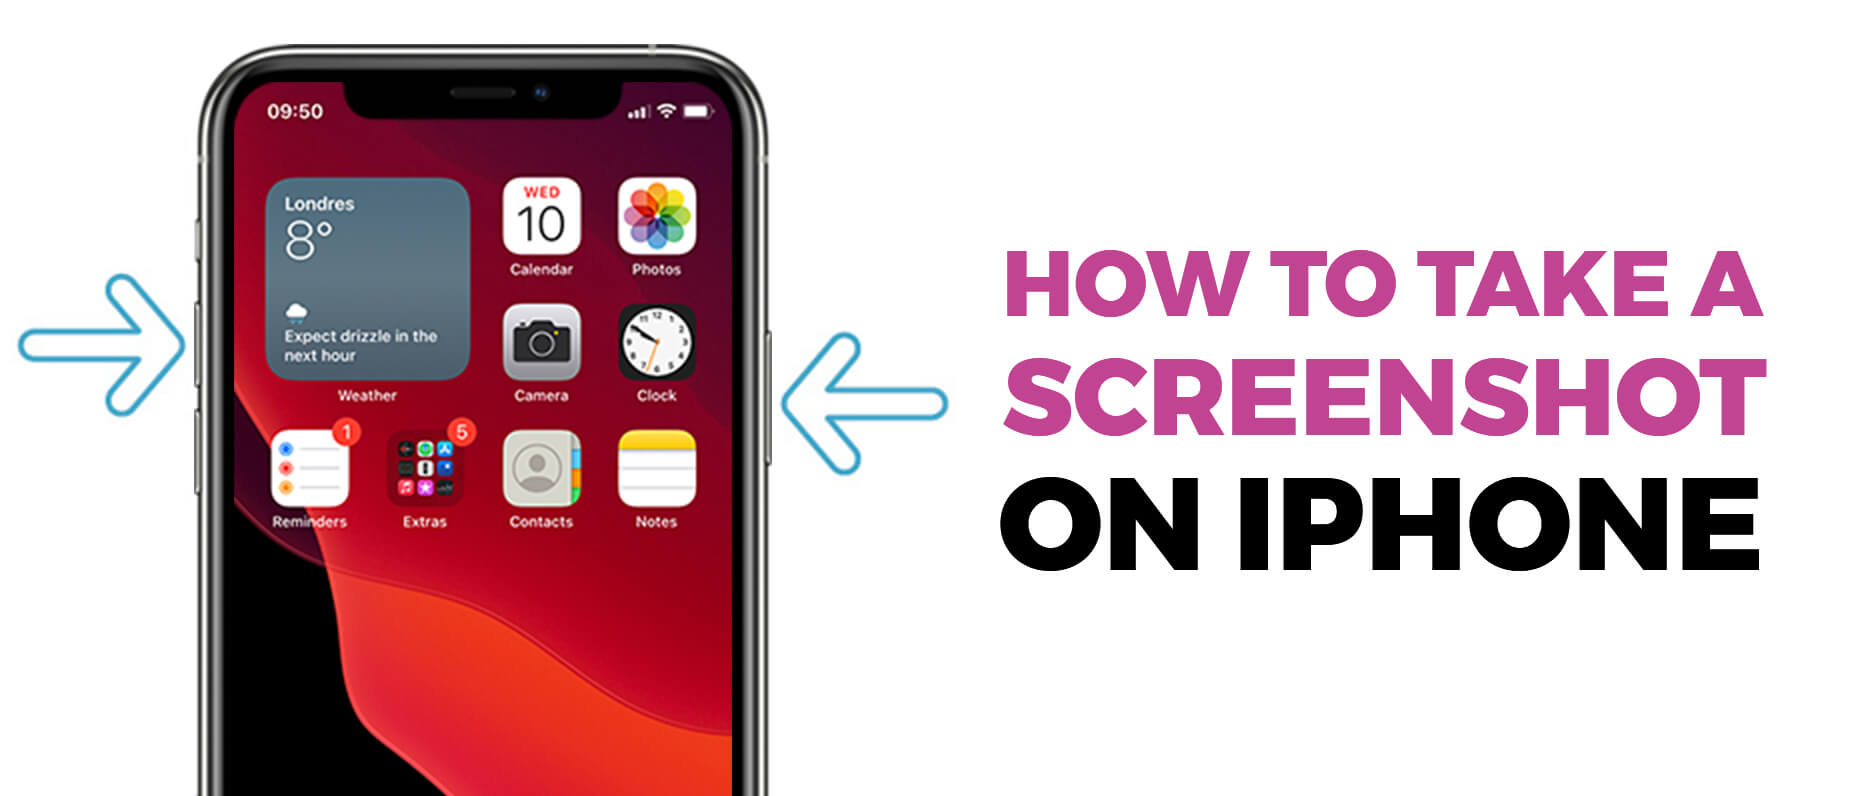 How to take a screenshot on iPhone